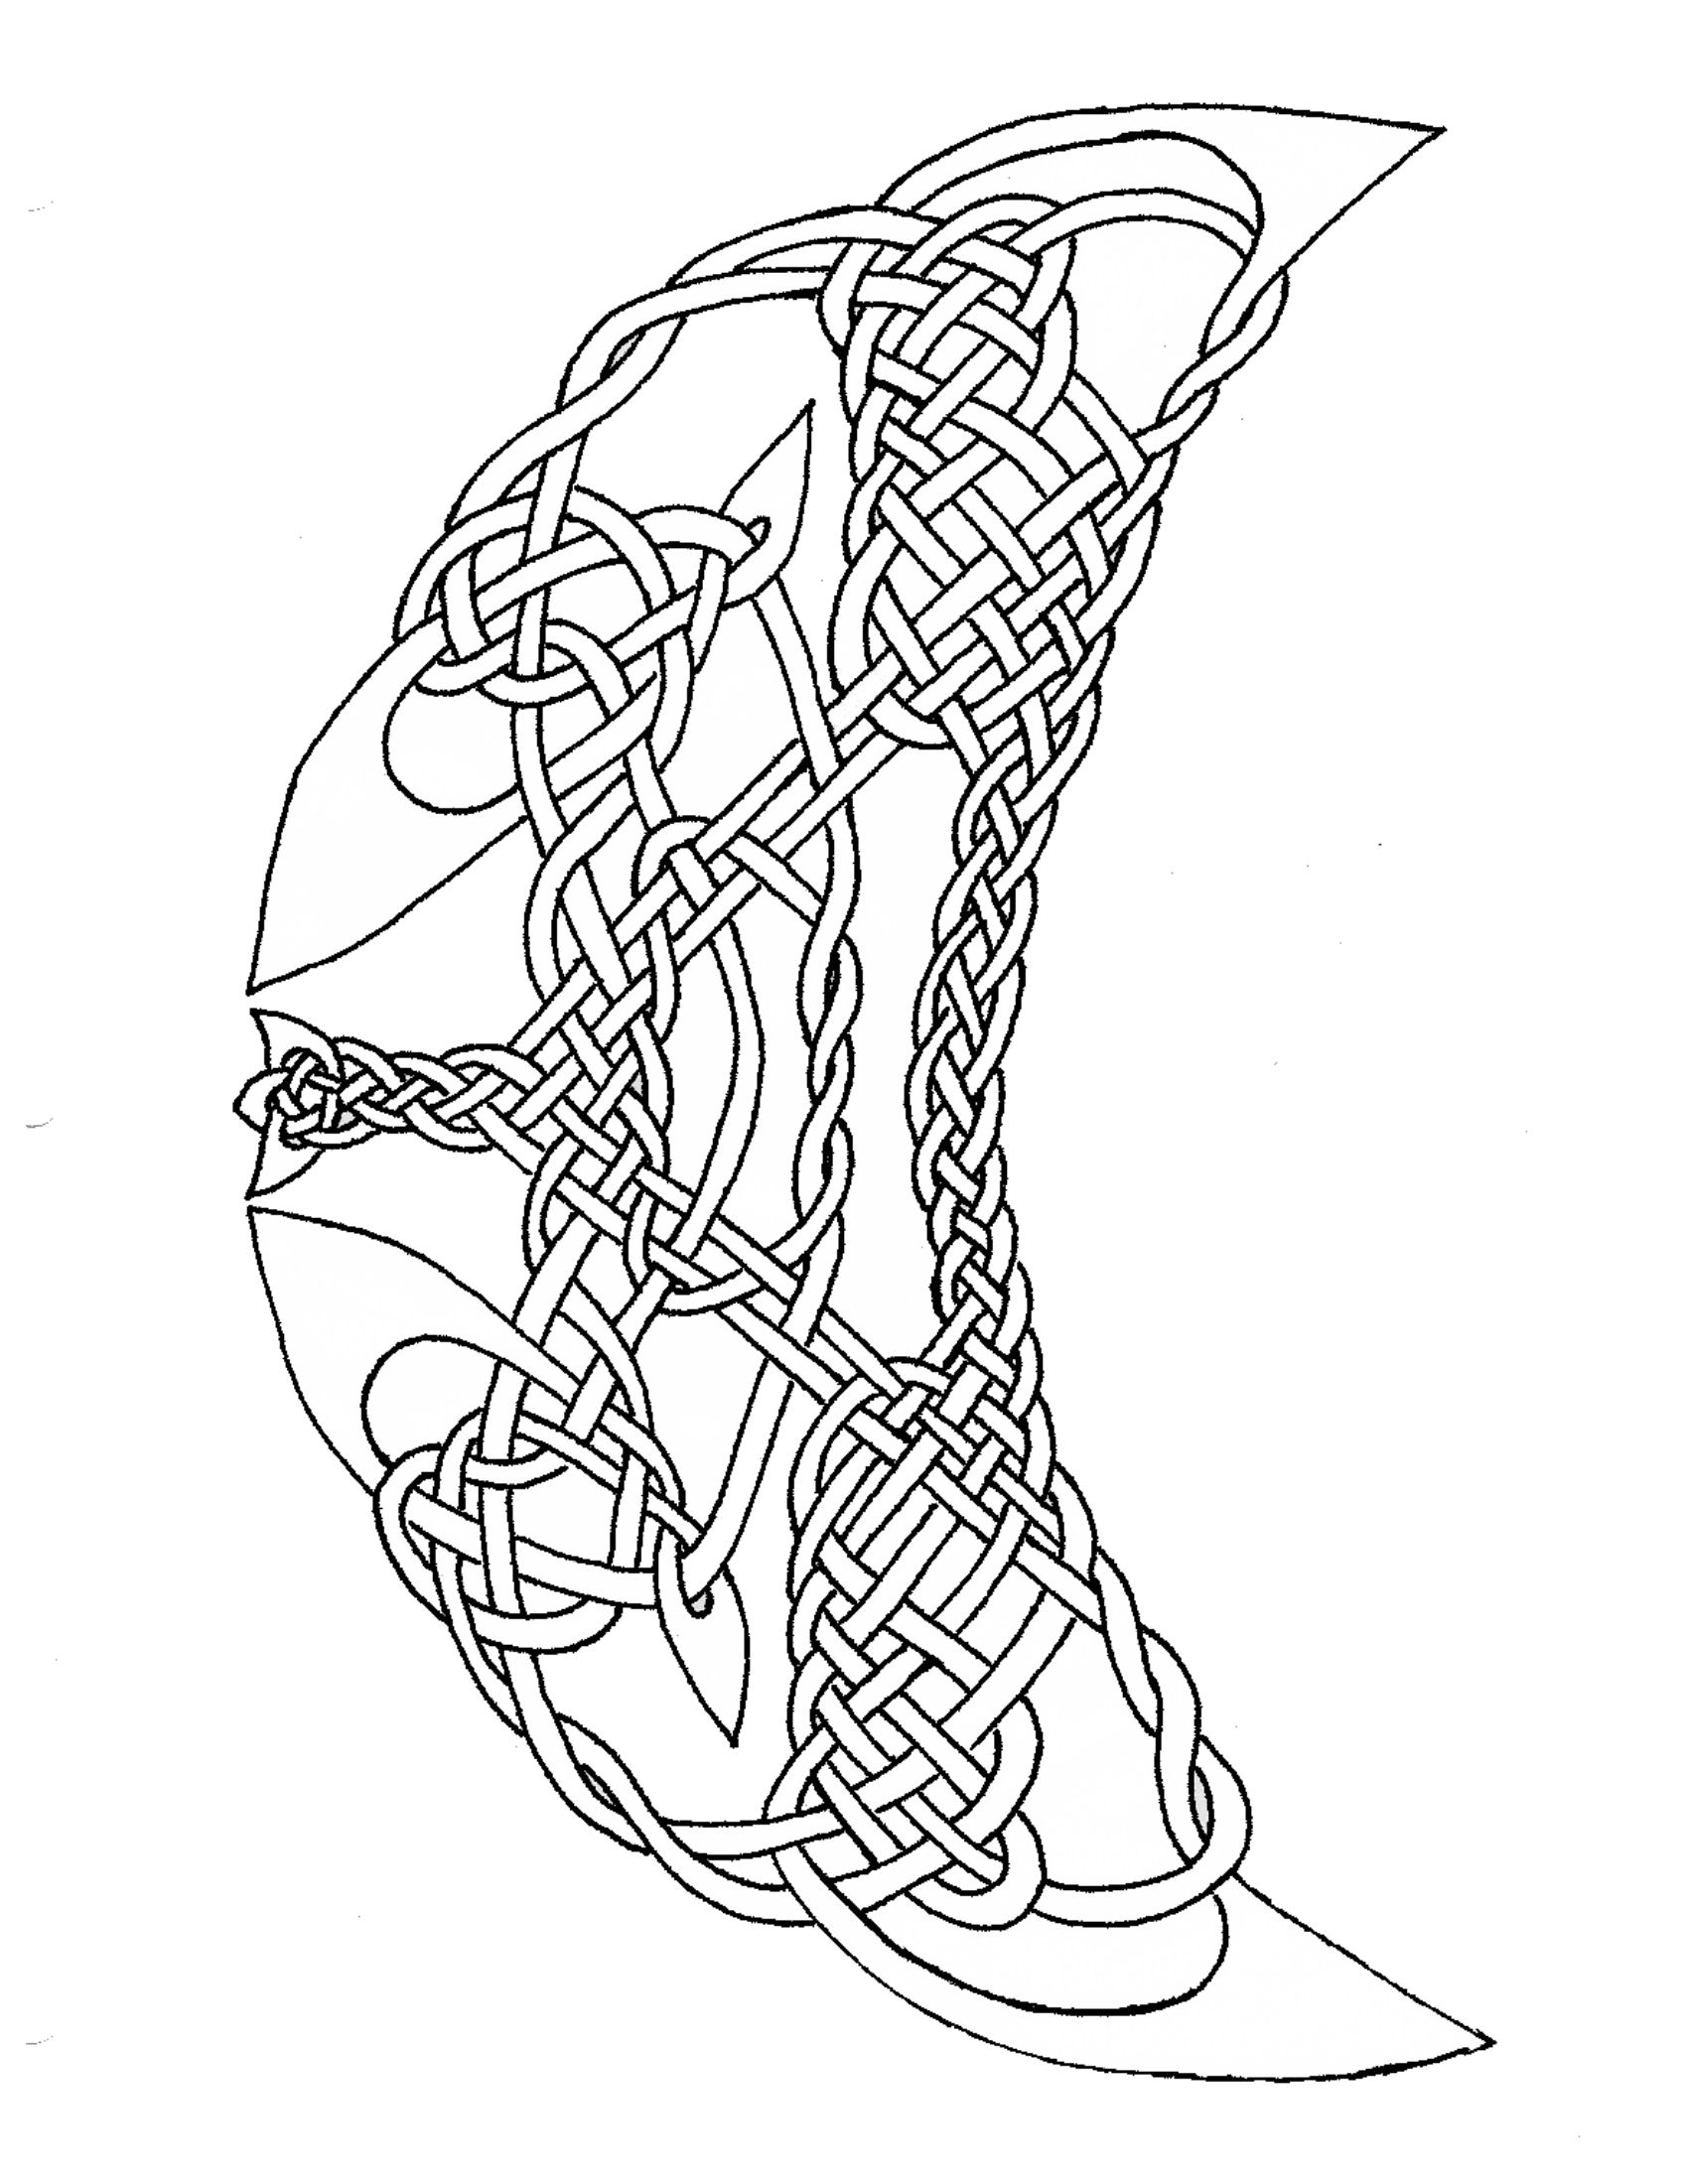 1700x2200 Celtic Moon Coloring Pages Get Coloring Pages To Print